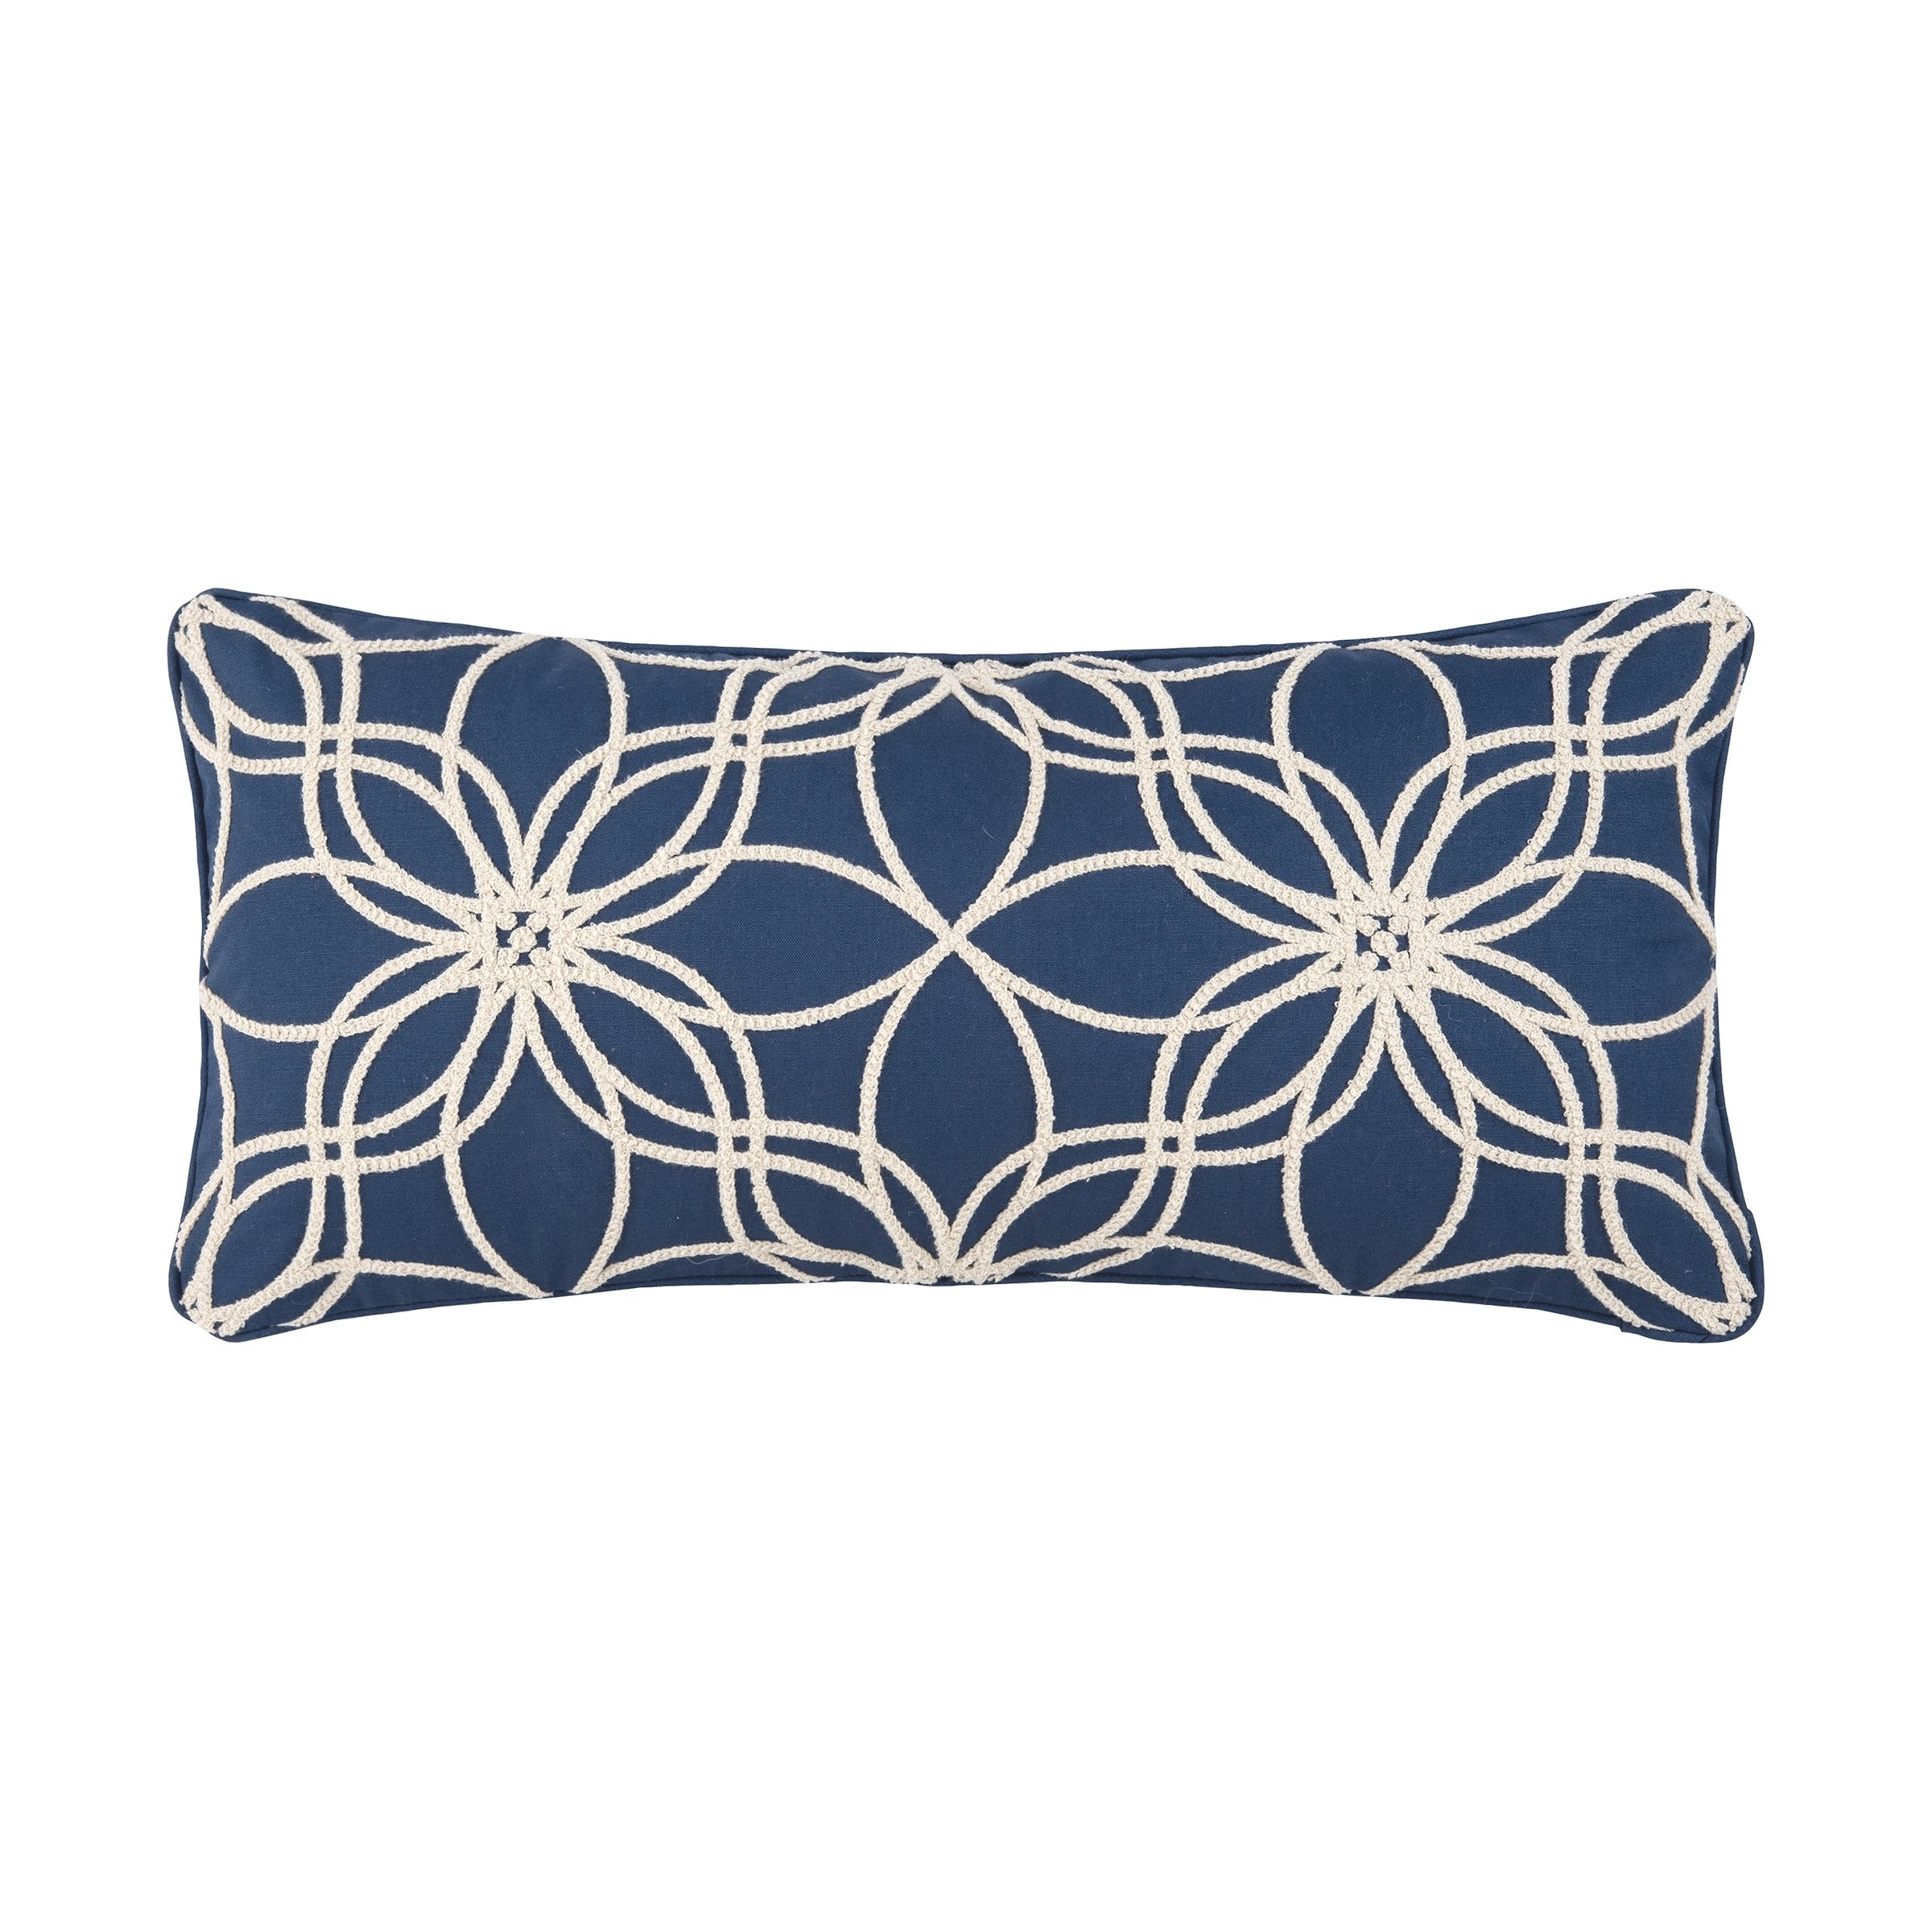 Skylark 12 x 24 Pillow (Indigo/White)